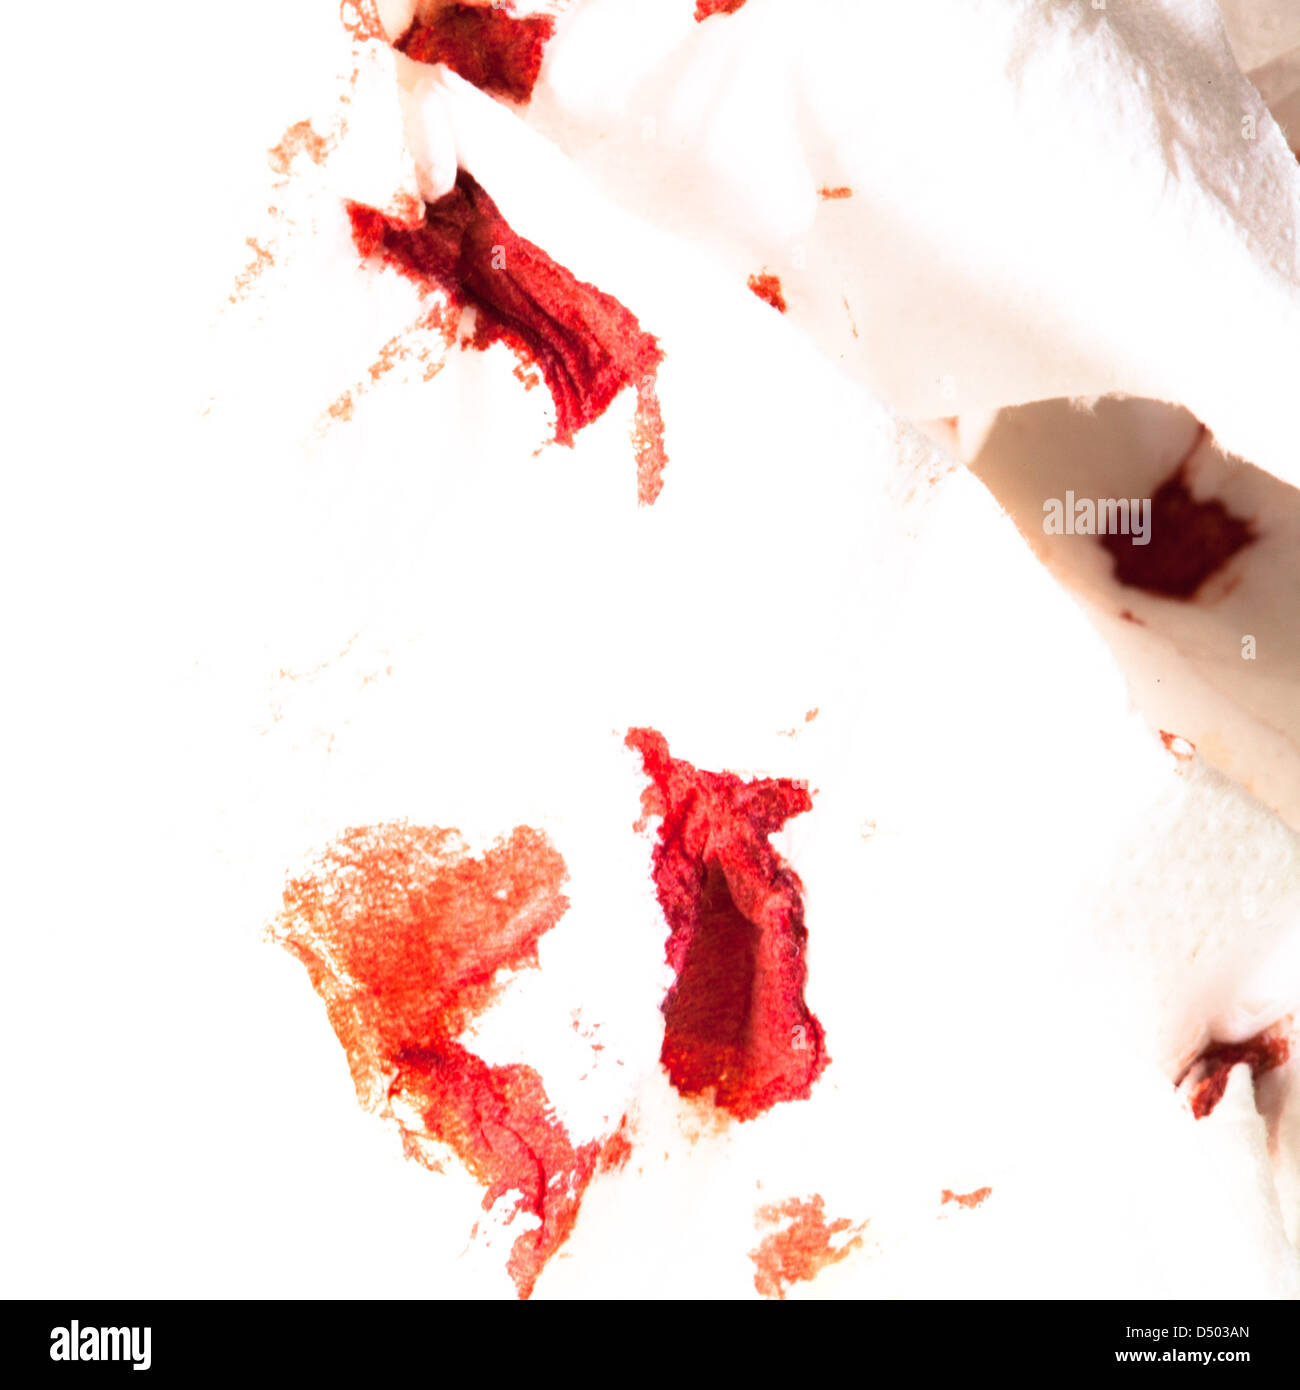 A white napkin has red dots from nose bleeding. Stock Photo